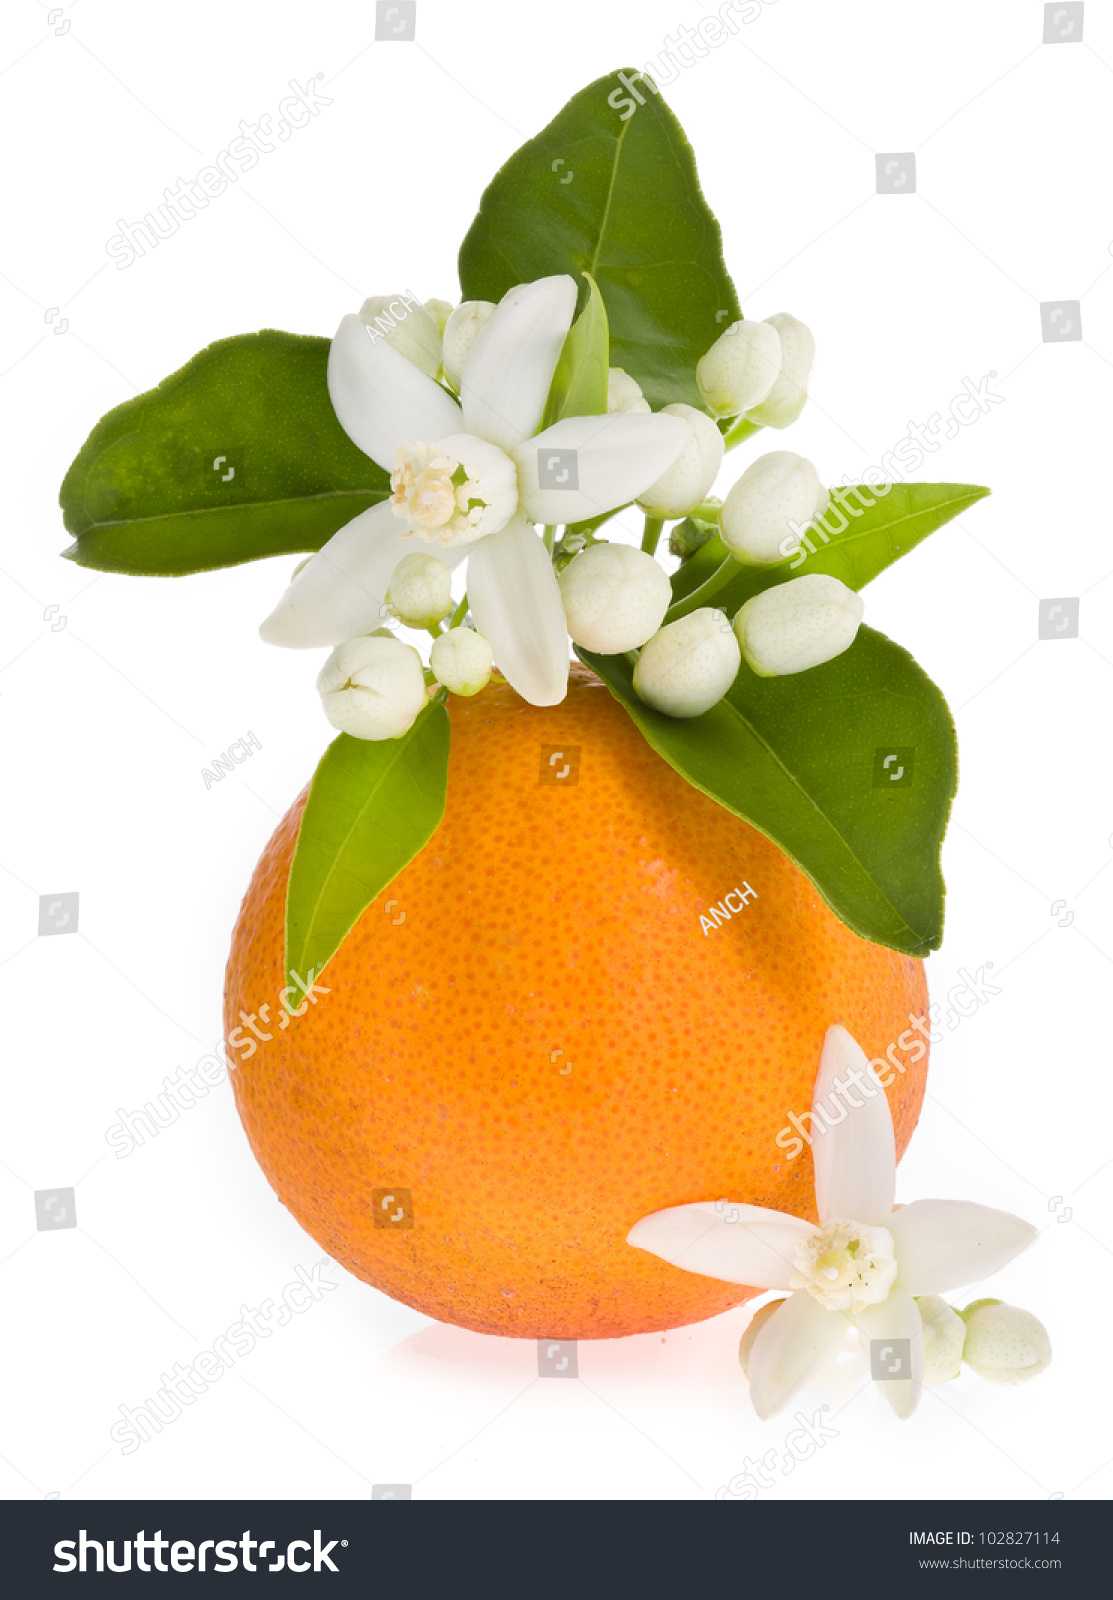 Orange Tree Flowers On Orange Fruit Stock Photo 102827114 ...